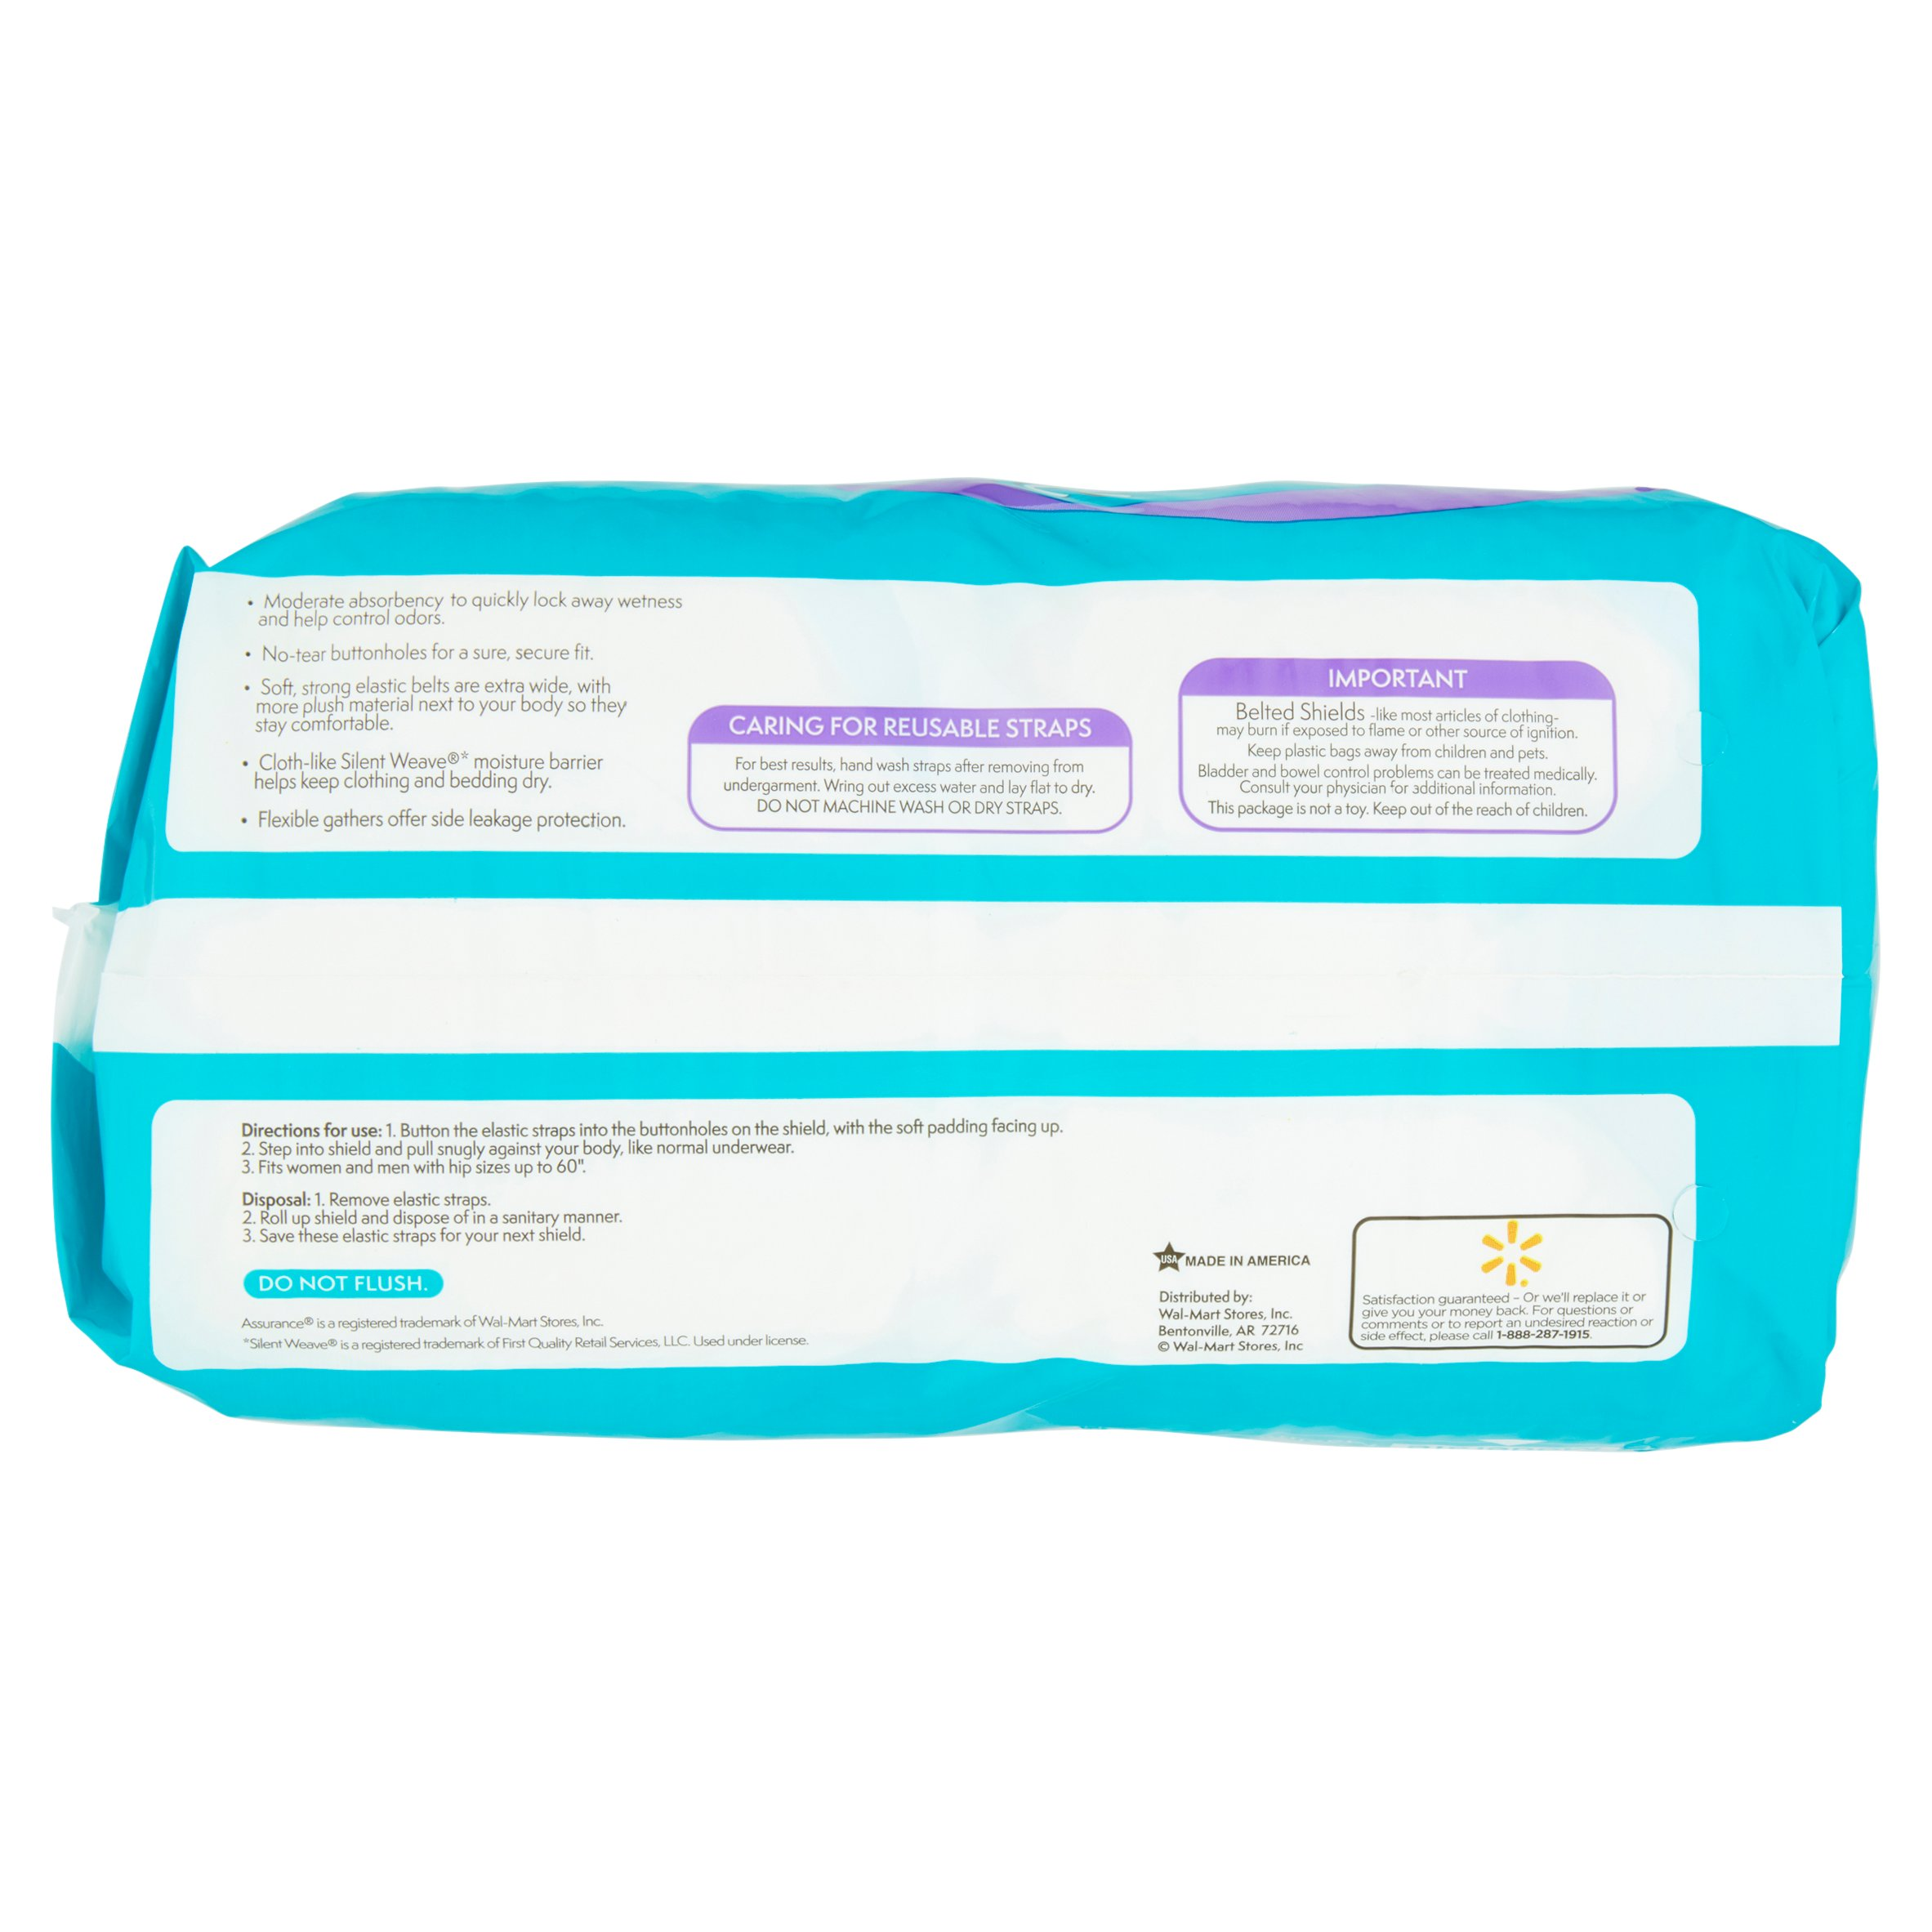 Poise® Moderate Absorbency Pads offer leak-block sides that gives you outstanding protection. Try and see how it works for you.